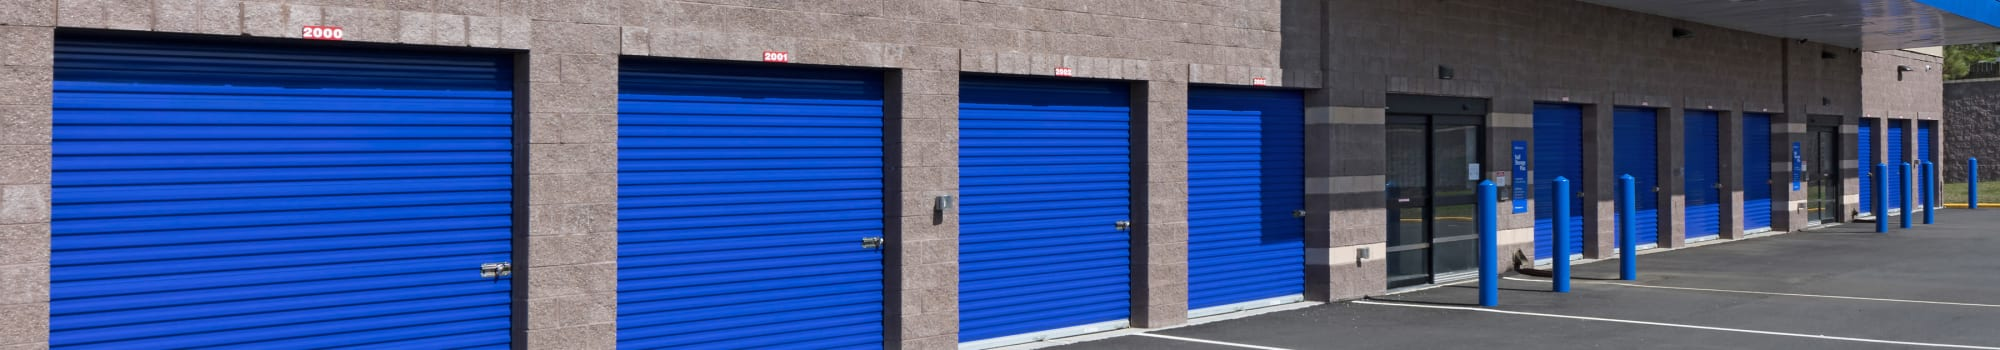 Self Storage Plus in Lorton, Virginia offering climate-controlled storage